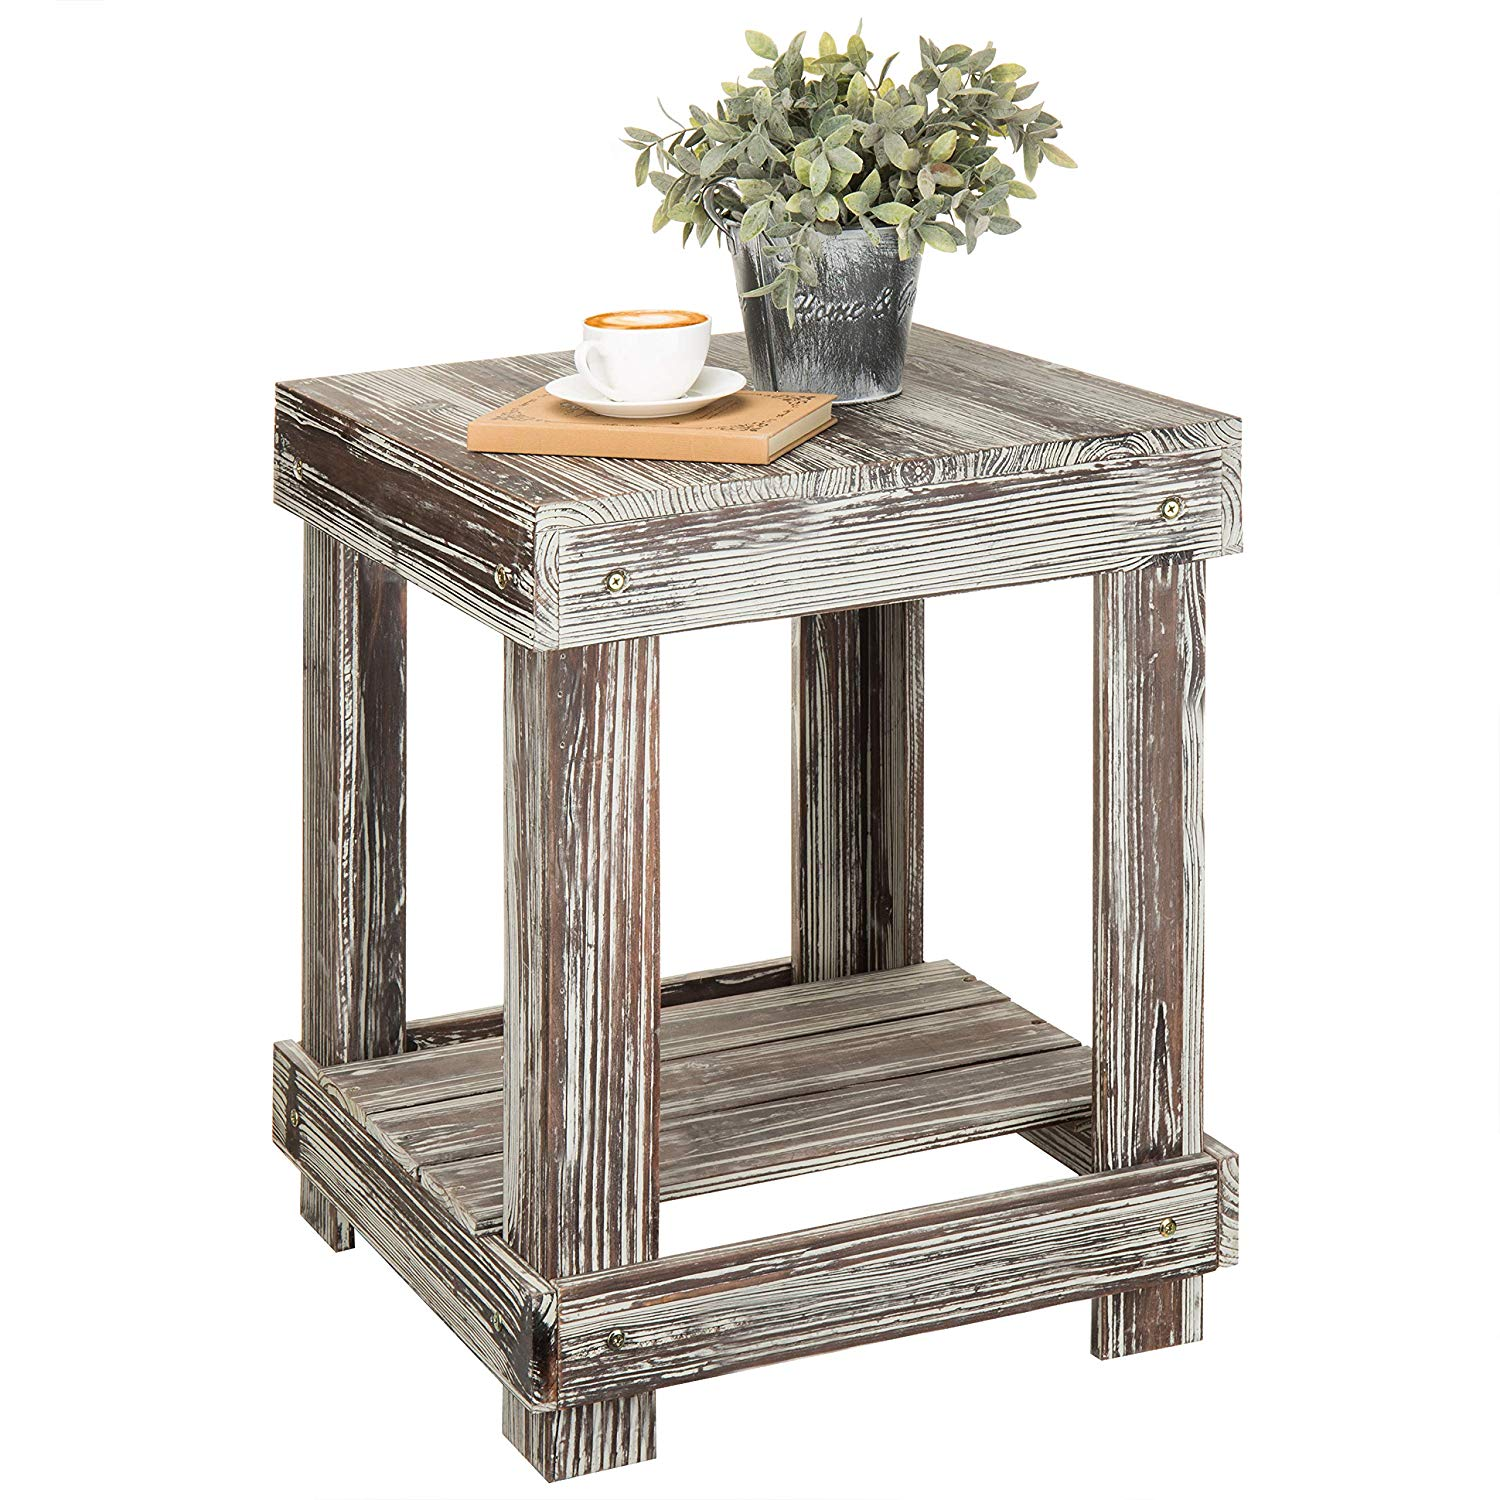 mygift rustic torched wood tier accent end table dark tables kitchen dining galvanized pipe thomasville furniture direct from gold side kmart wide sofa dog travel crate homesense